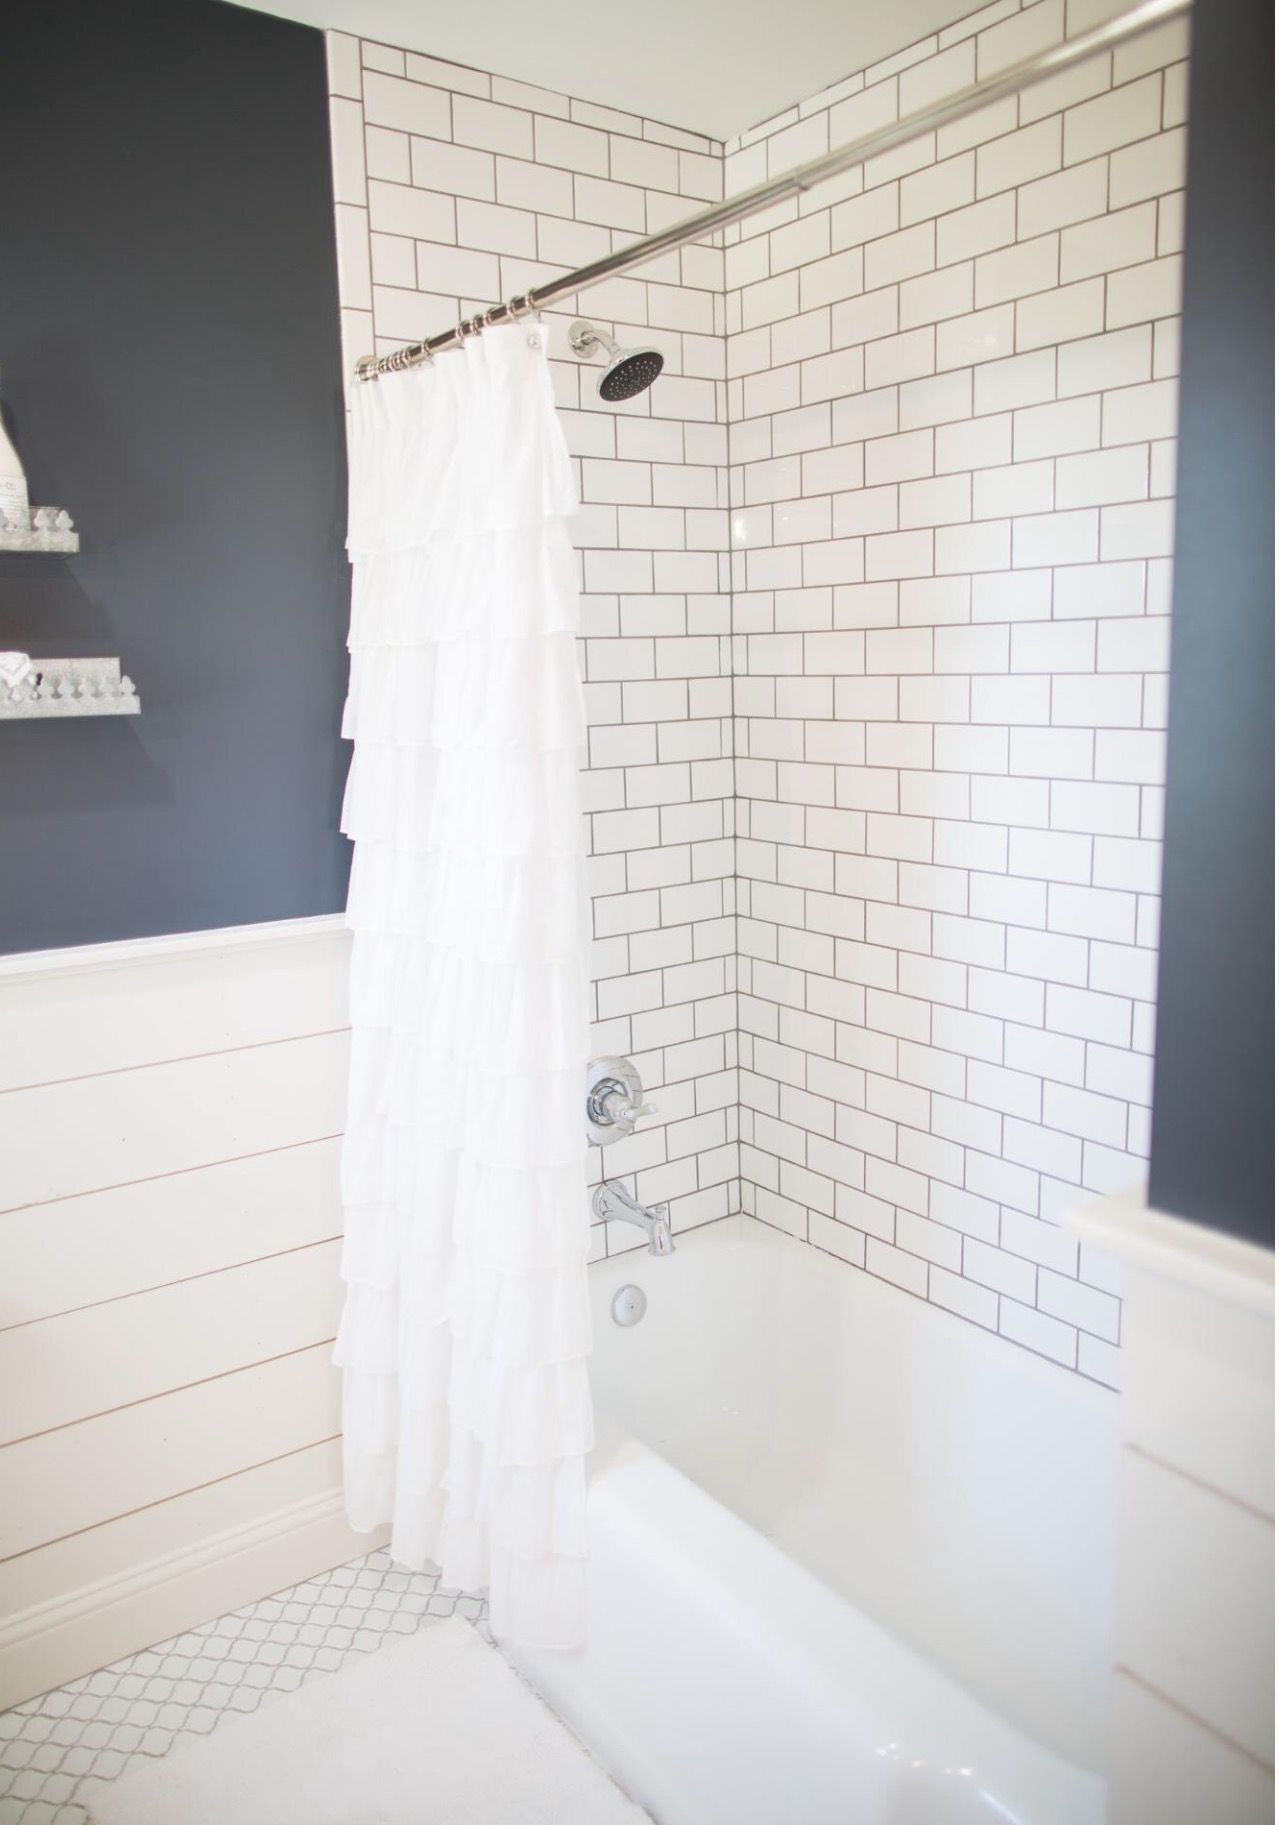 subway tile to ceiling, bead board rest of the walls | BATHROOM RE ...